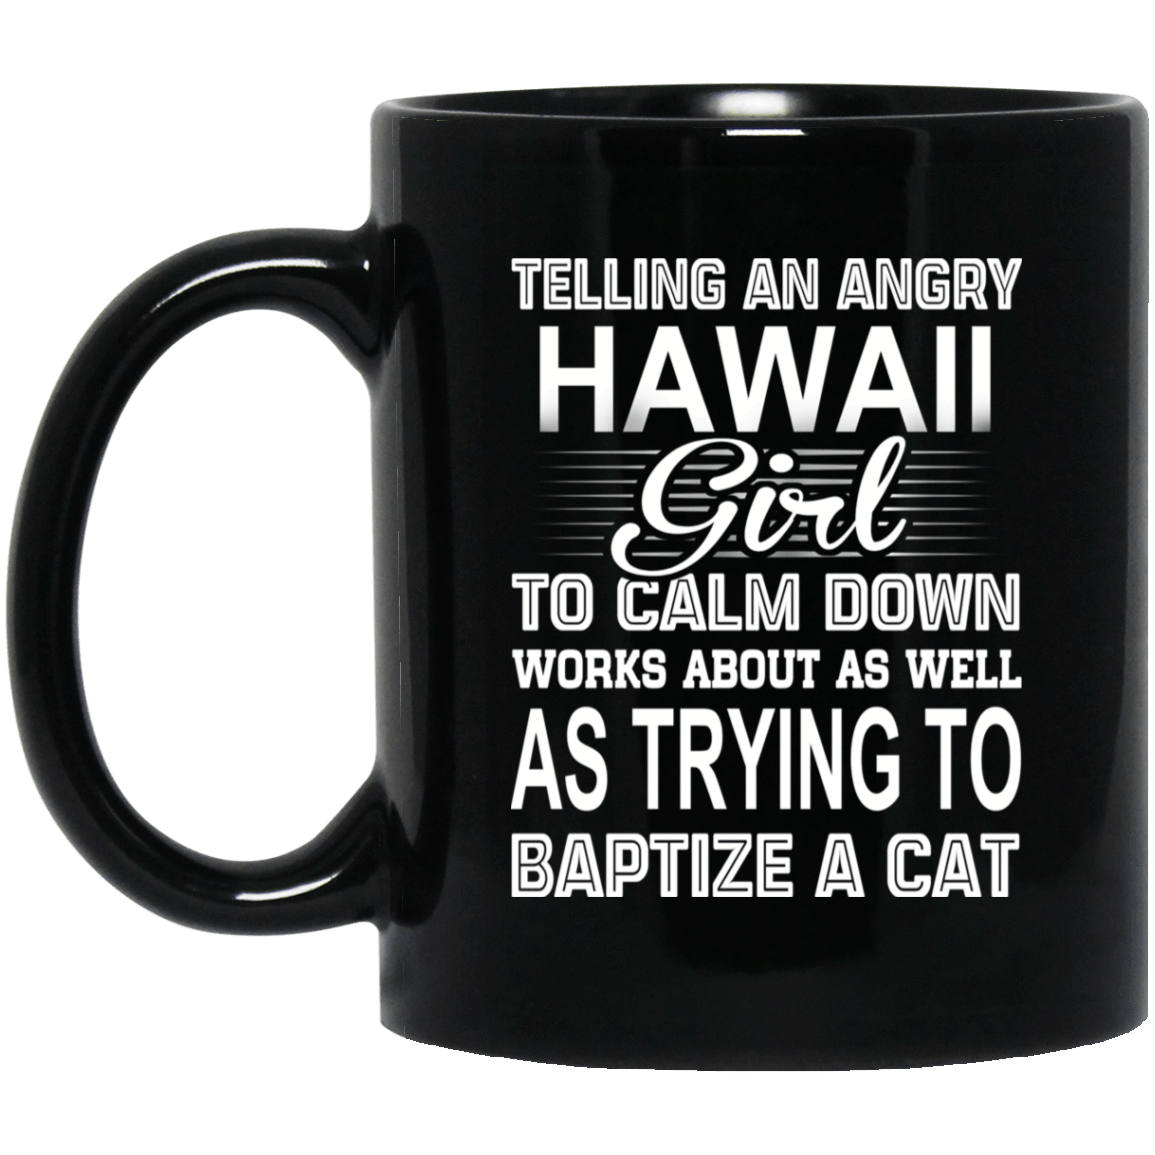 Telling An Angry Hawaii Girl To Calm Down Works About As Well As Trying To Baptize A Cat Mug 1065-10181-76151649-49307 - Tee Ript